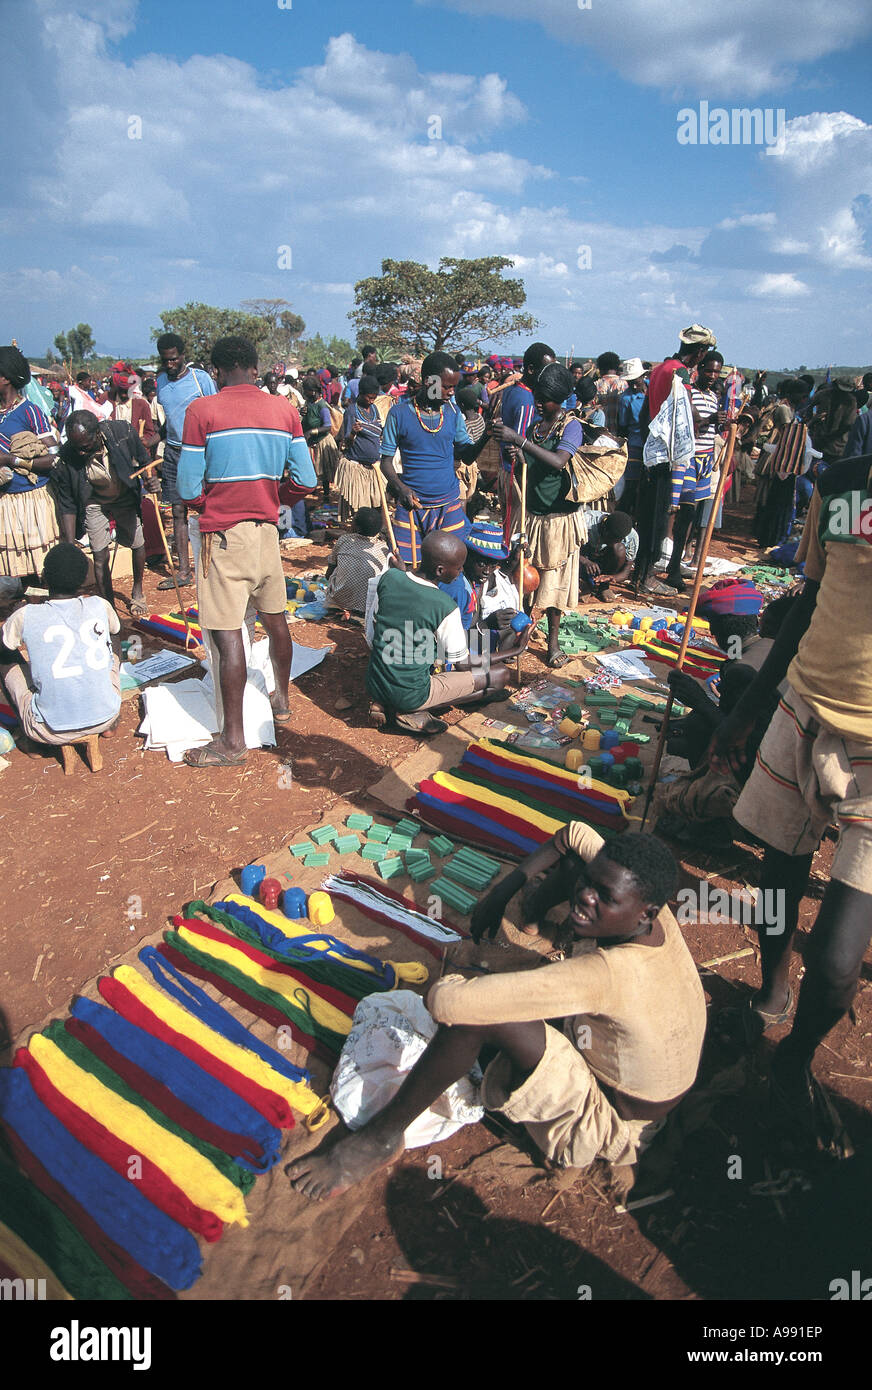 Busy market selling threads for traditional colourful clothes Konso Ethiopia - Stock Image